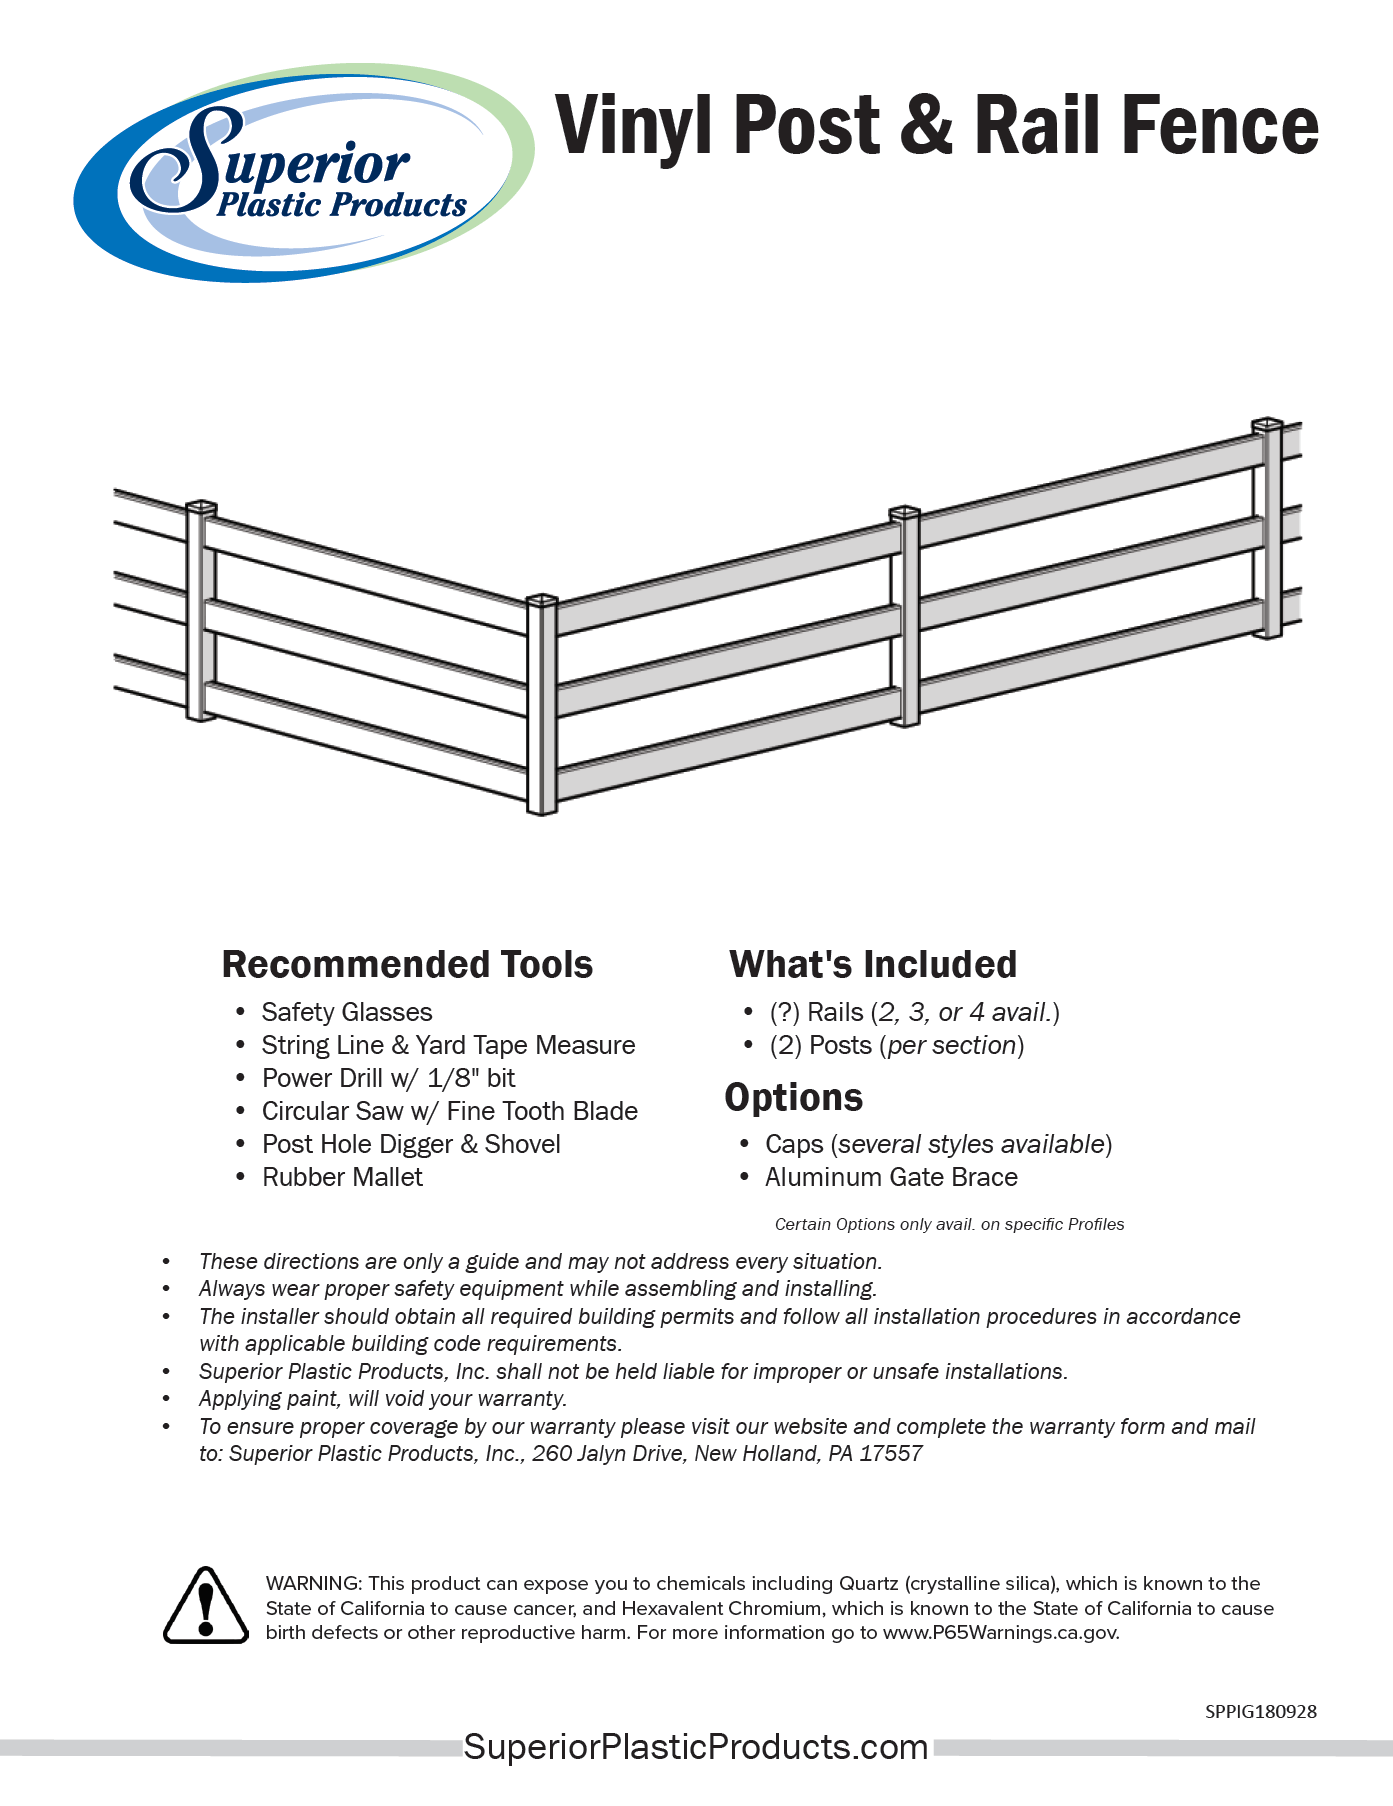 Low-Maintenance 4 Rail Vinyl Fence - Superior Plastic Products